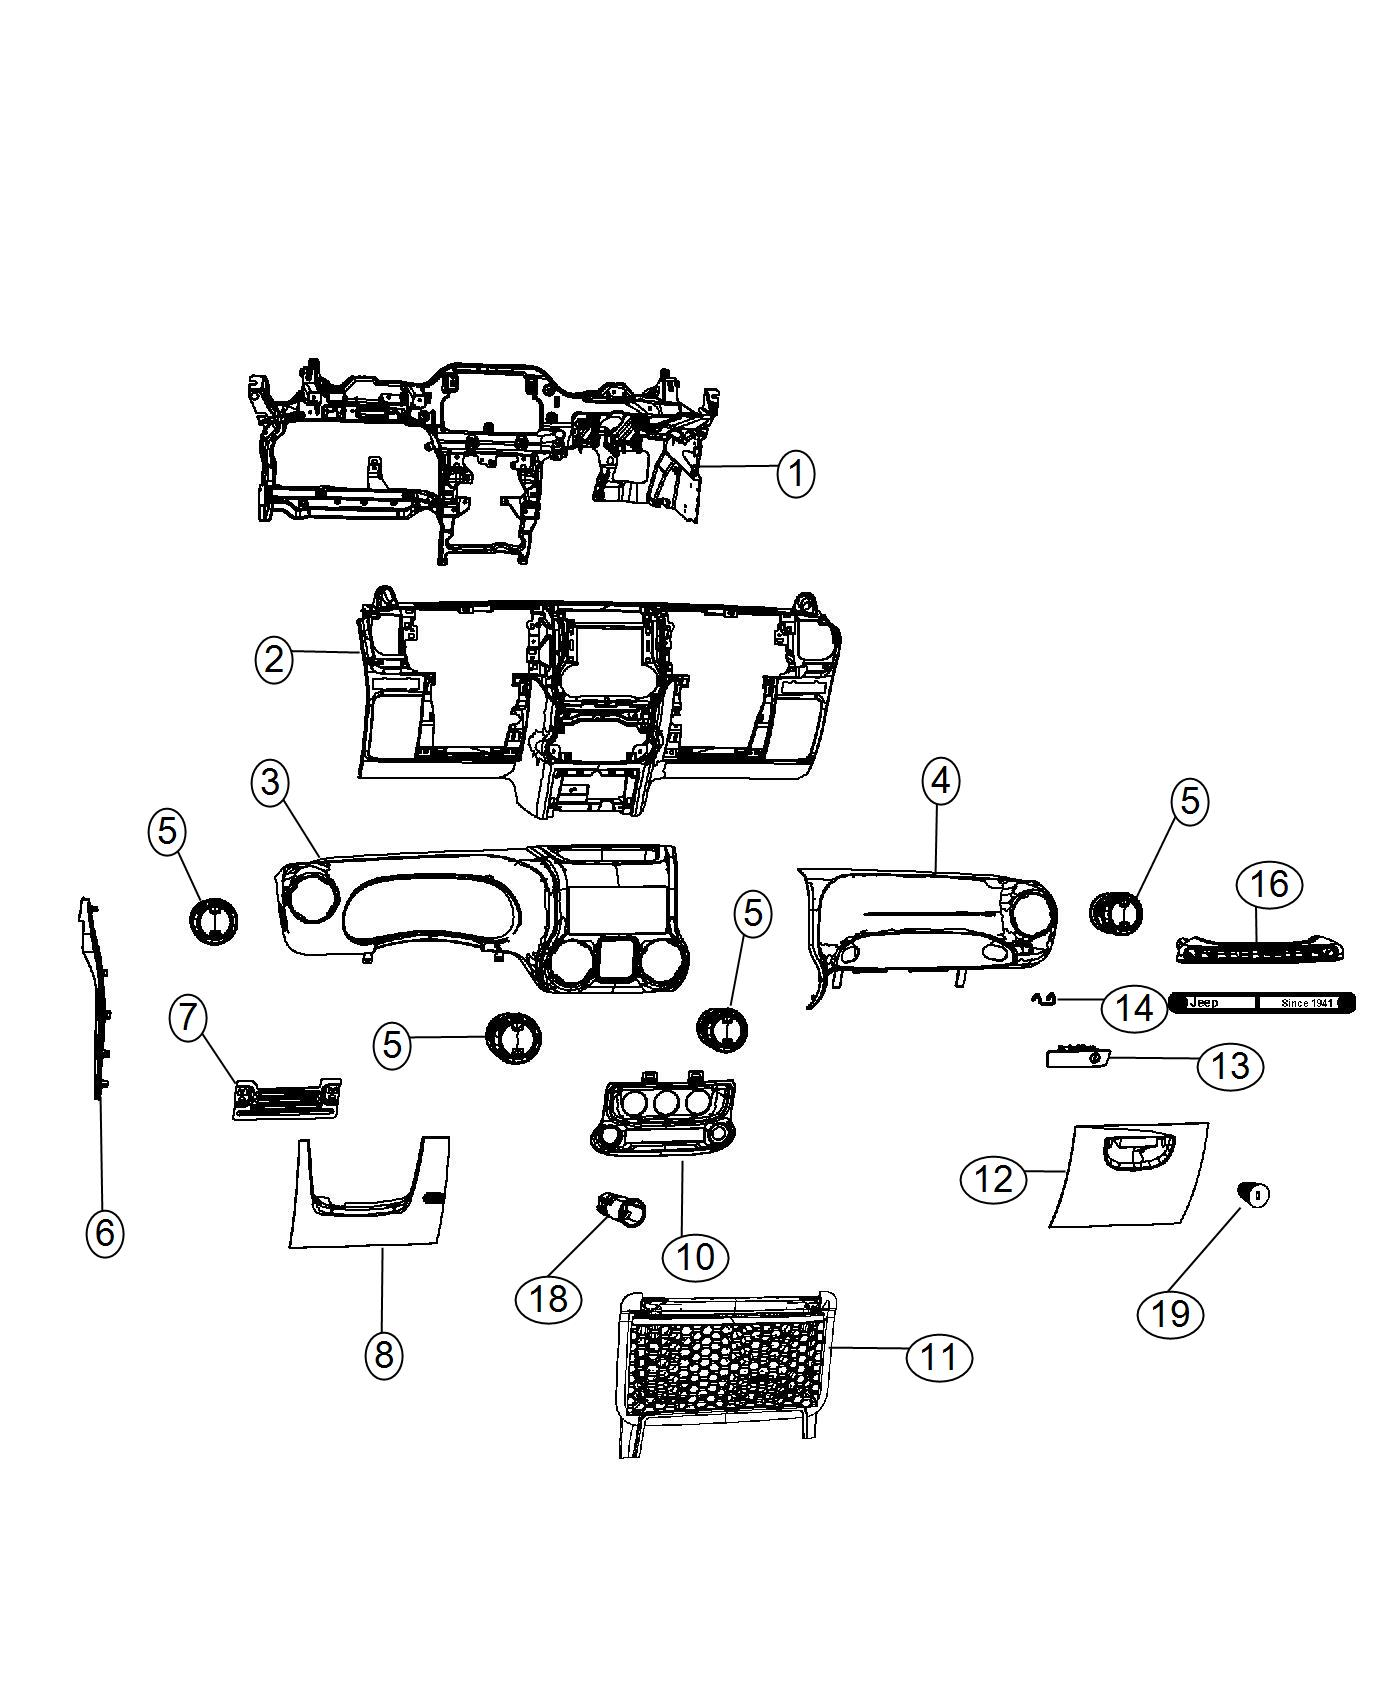 Jeep Wrangler Outlet Used For Air Conditioning And